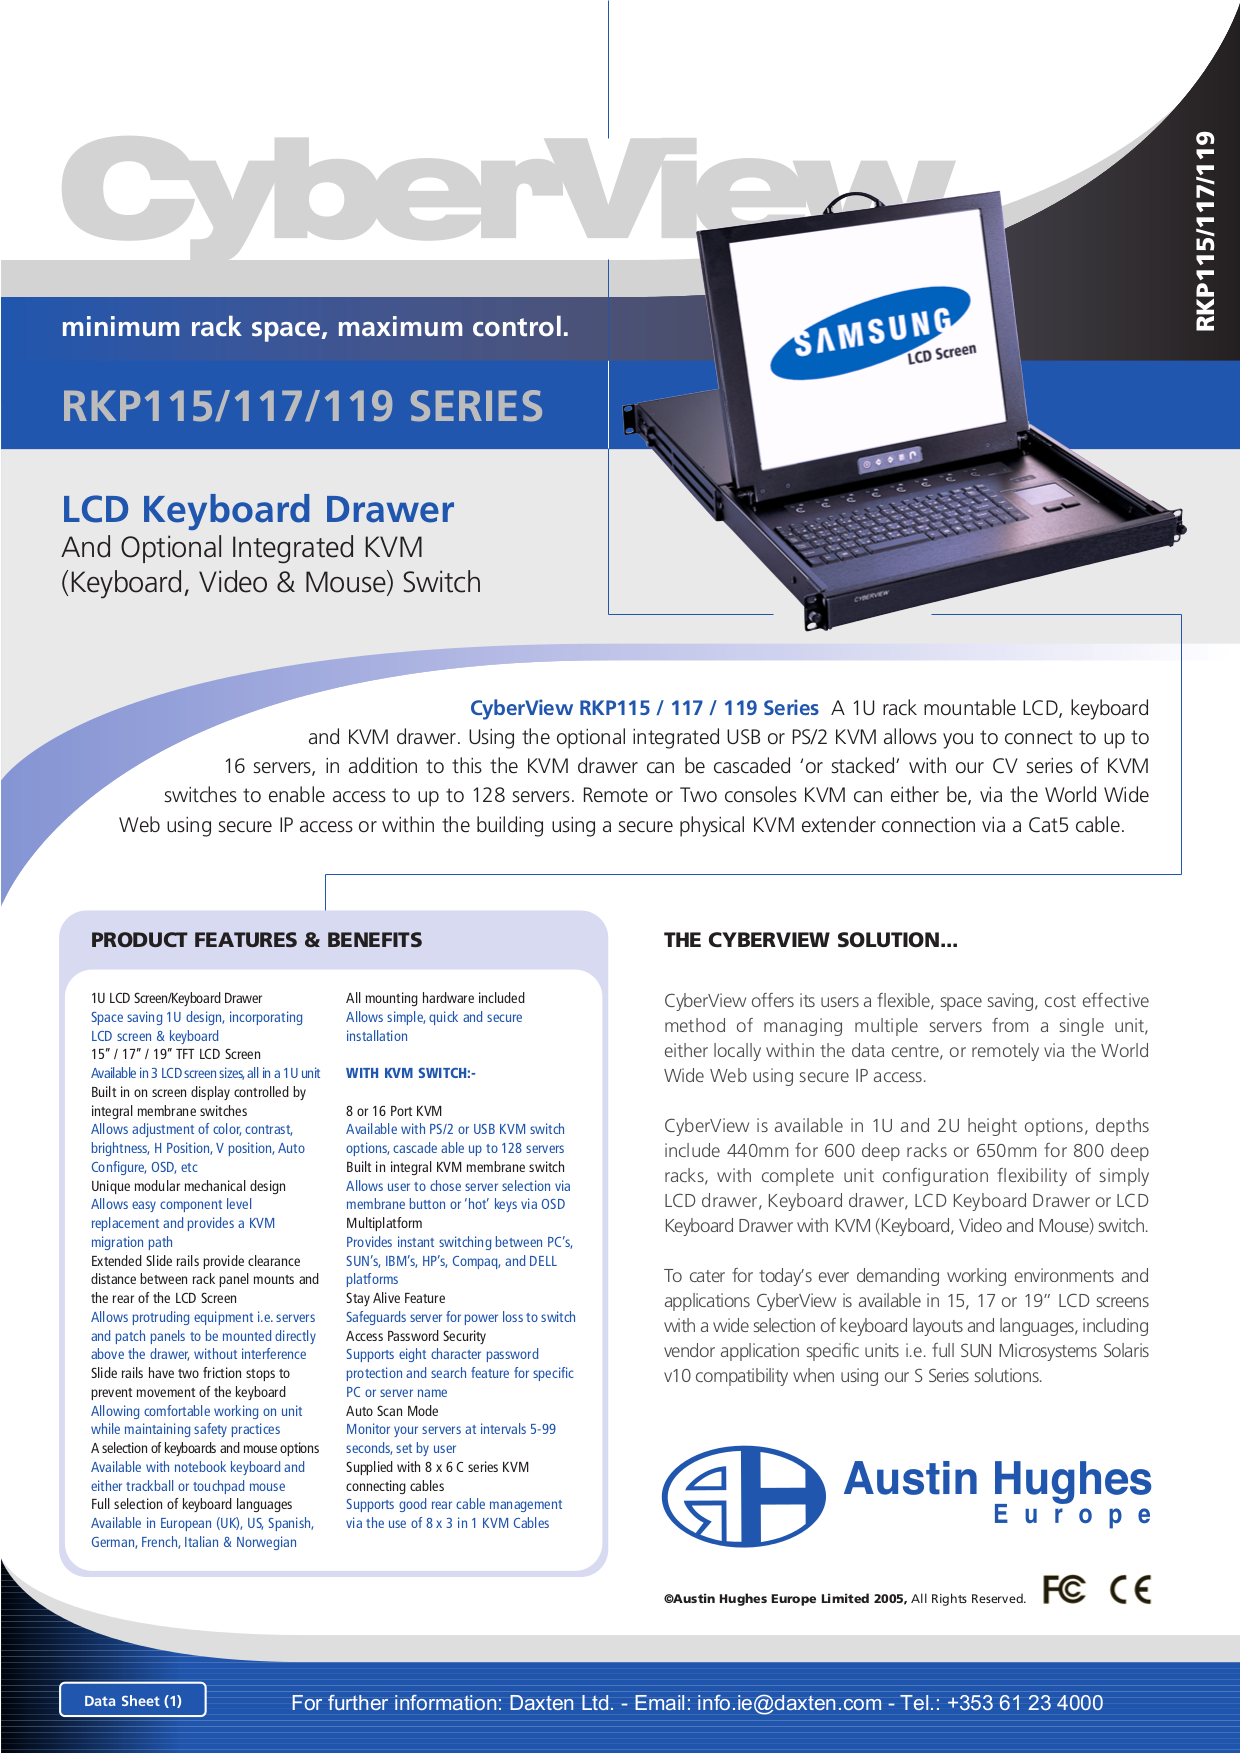 pdf for I-Tech Other RKP117 Keyboard Drawers manual